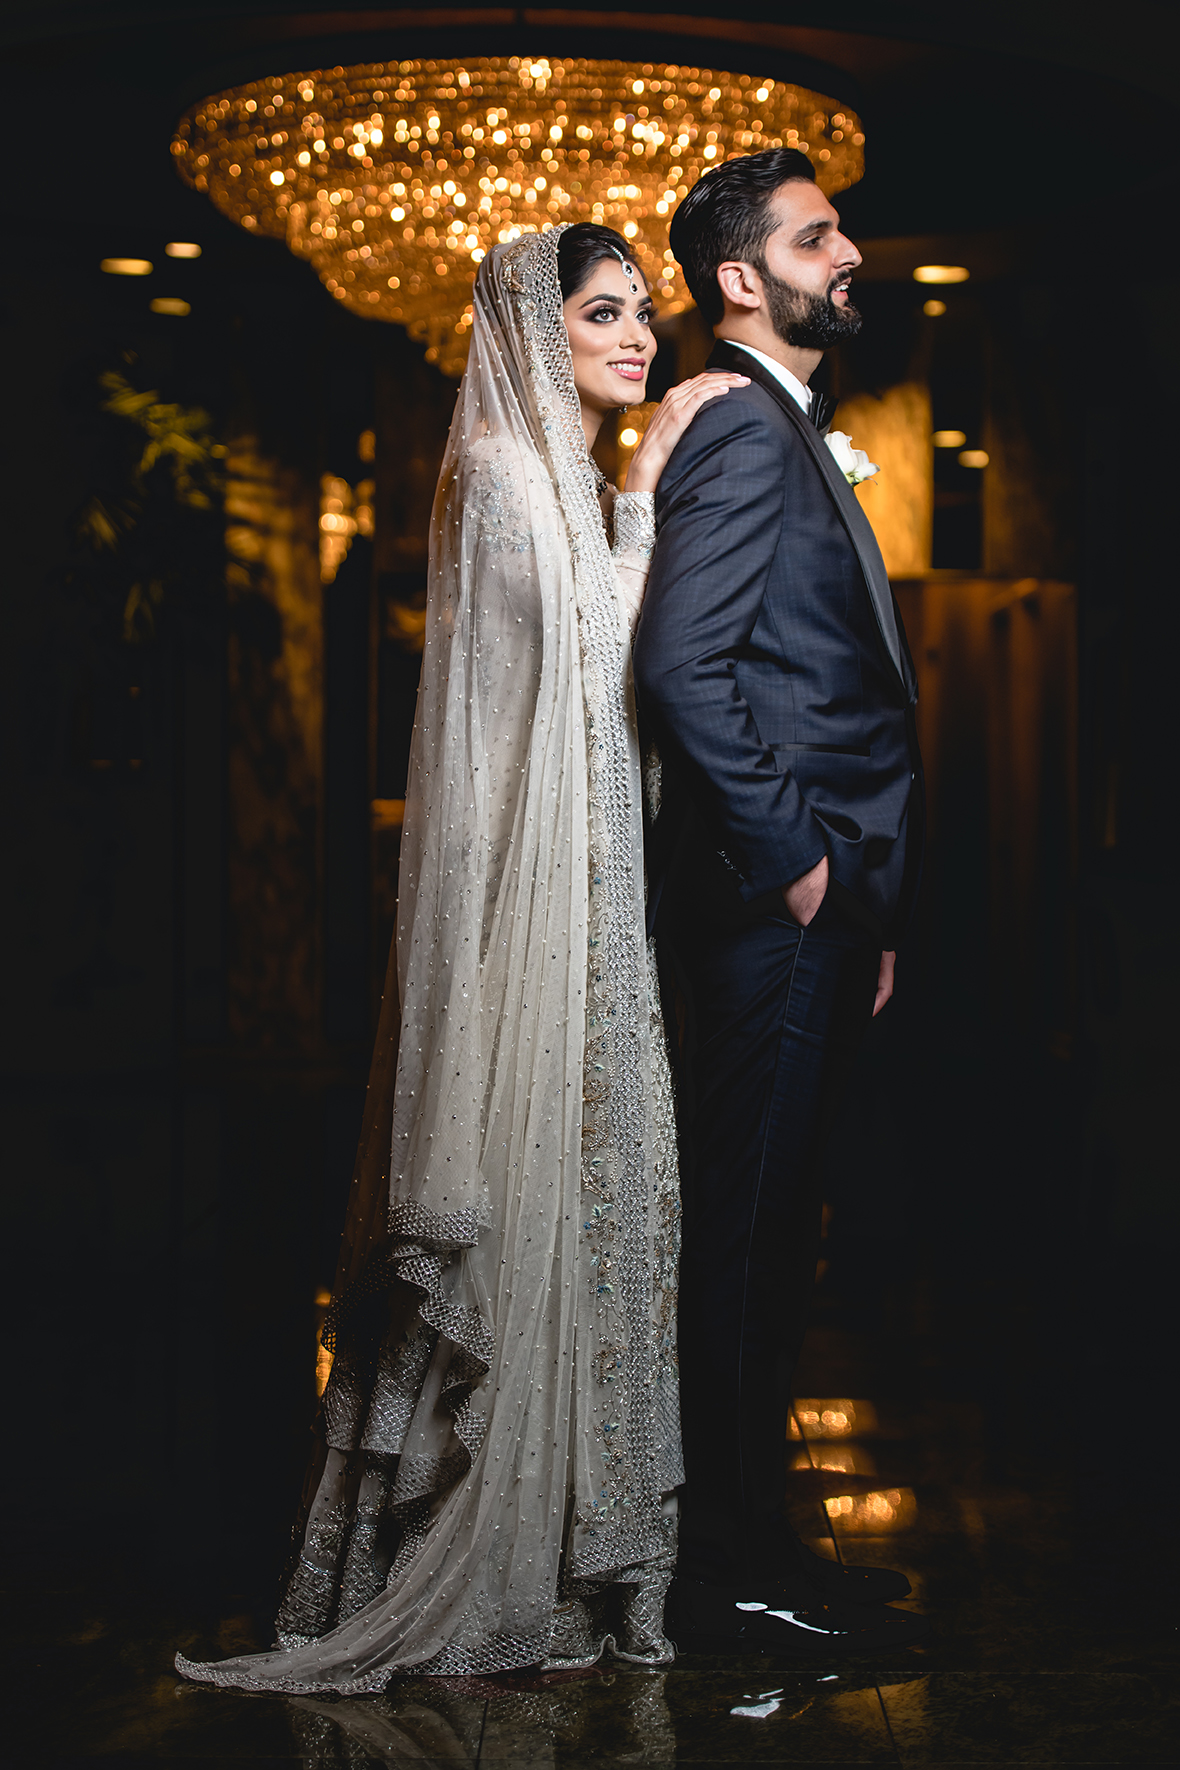 south_asian_wedding_photography_leonards_palazzo_long_island_new_york_dhoom_studio_68 SOUTH ASIAN WEDDINGS